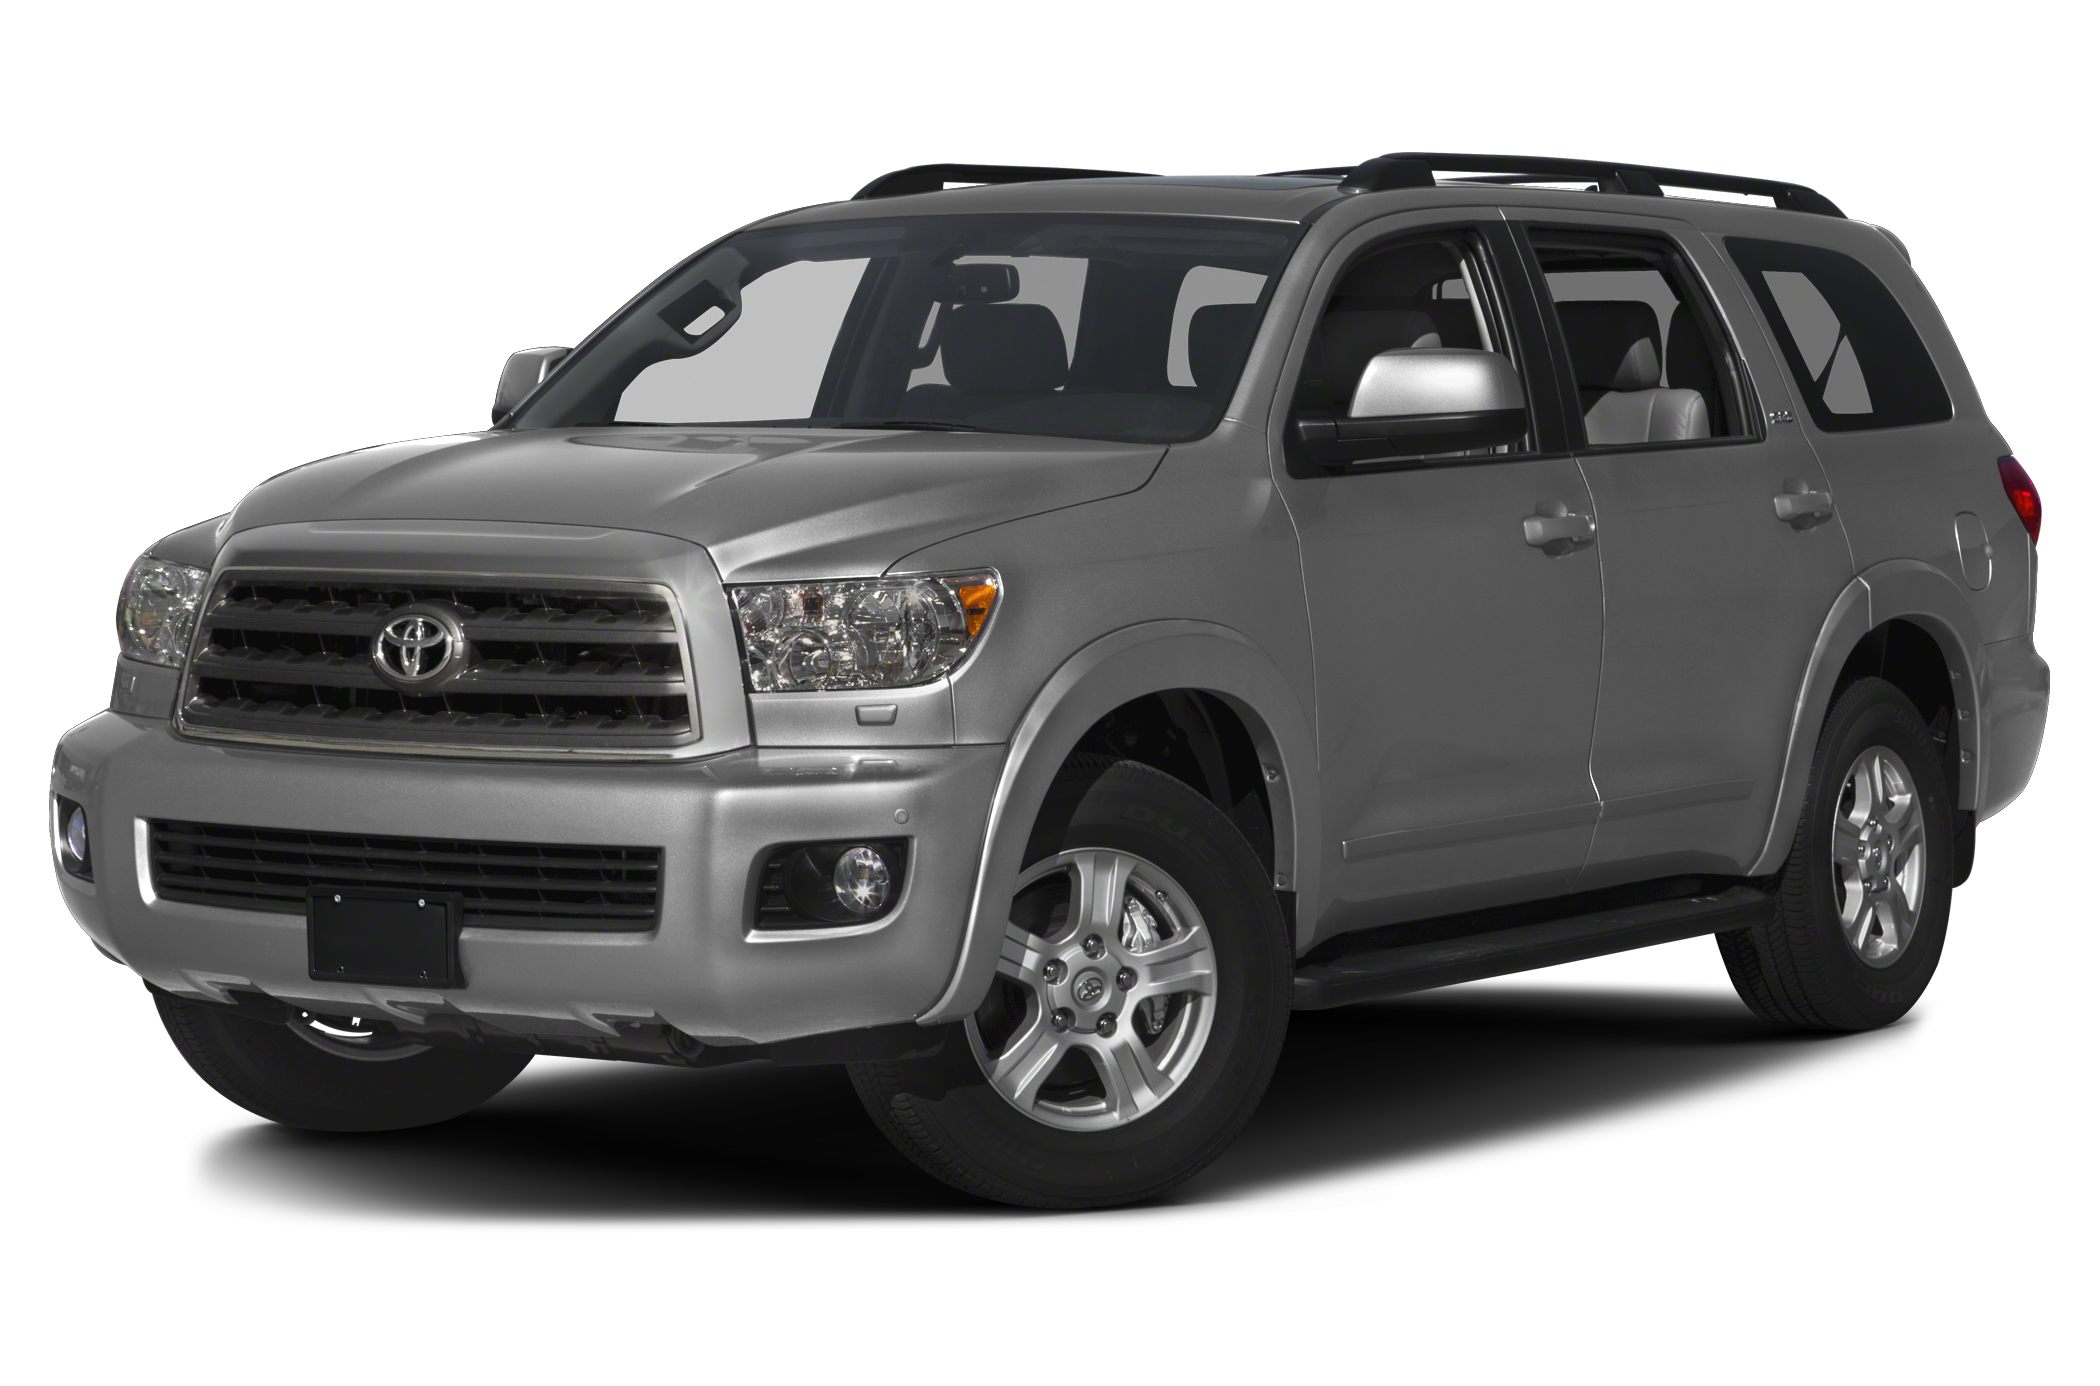 2016 Toyota Sequoia SR5 Looking for a new car at an affordable price Introducing the 2016 Toyota